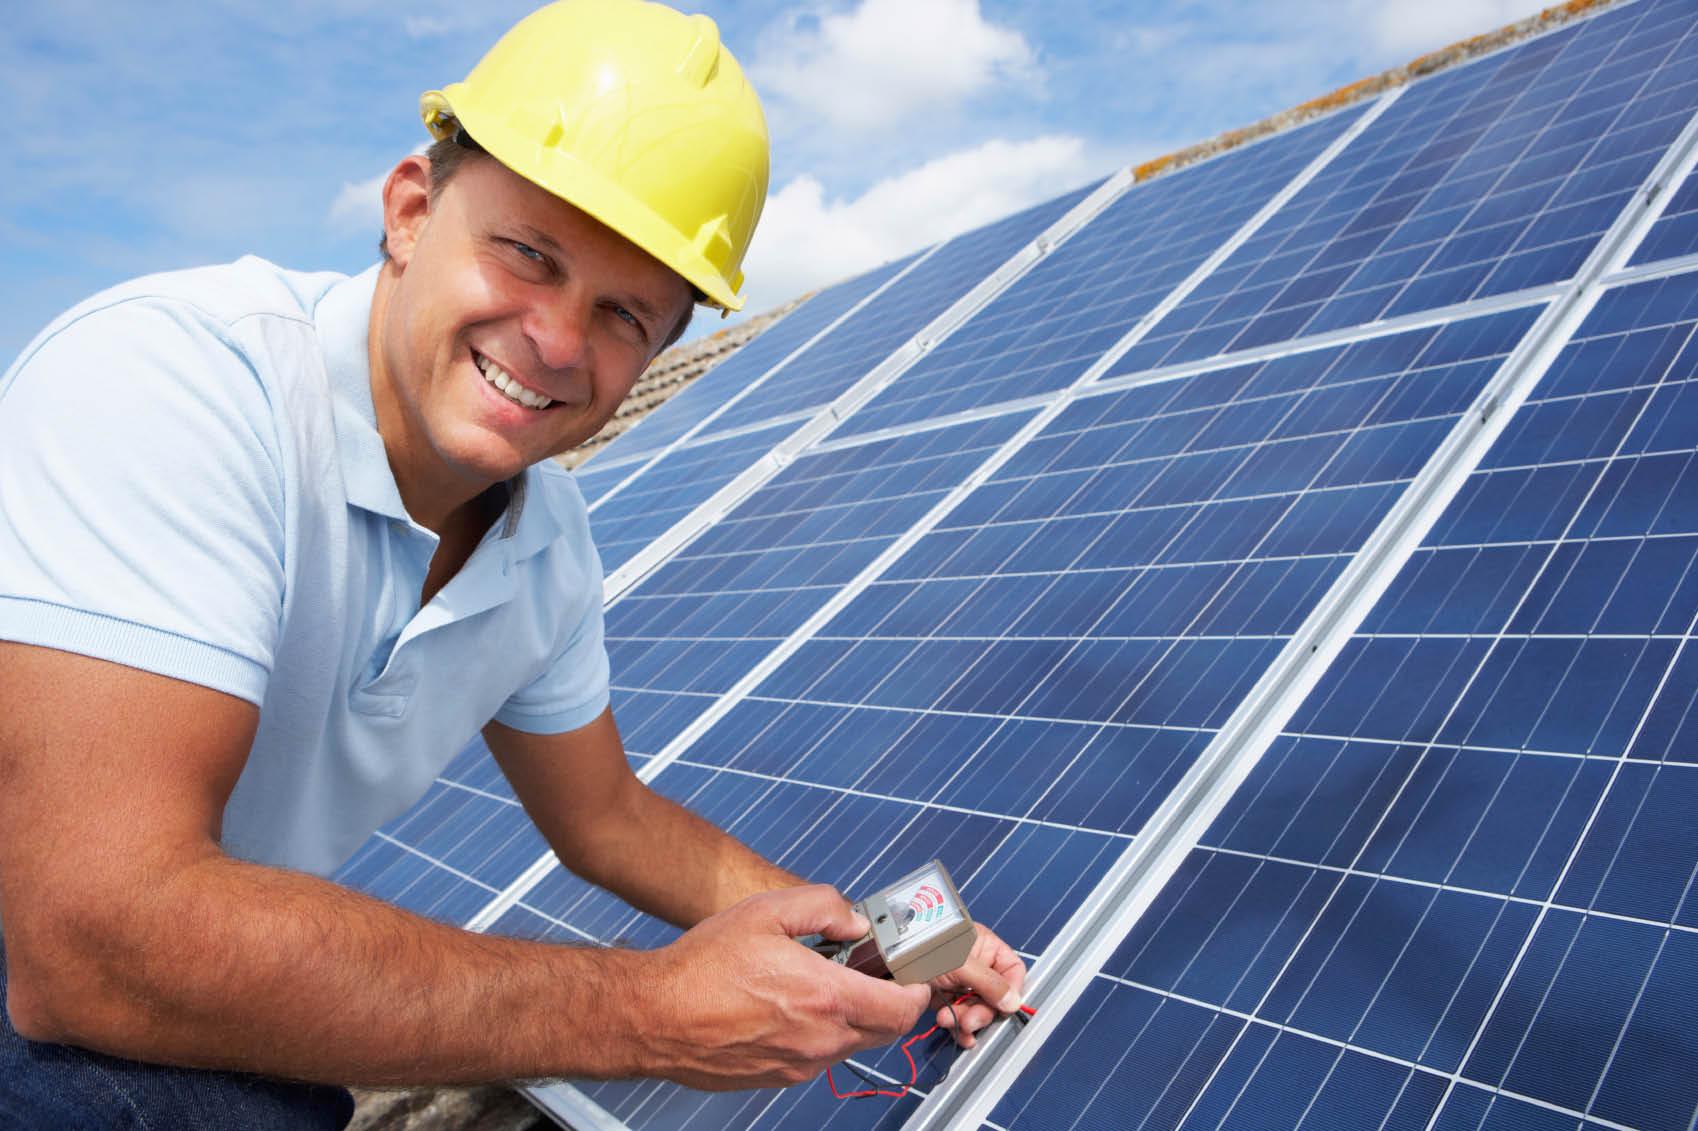 Geothermal Energy Options is a professional installer of residential solar panels